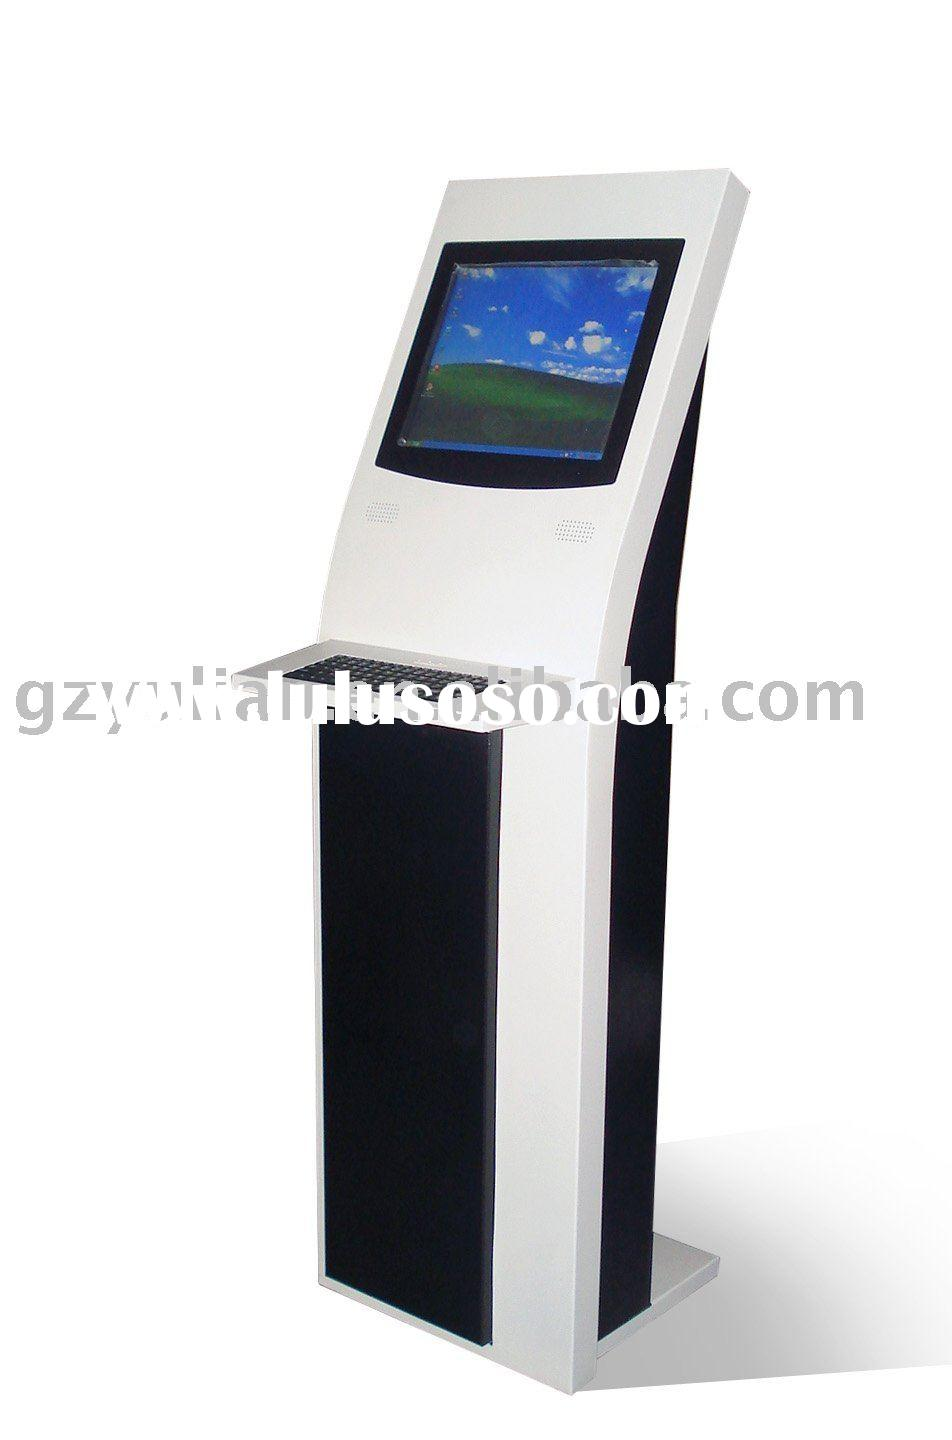 Photo kiosk with camera/ Kiosk with A4 printer/ Coin accptor/ bill acceptor/ Credit card reader/ met